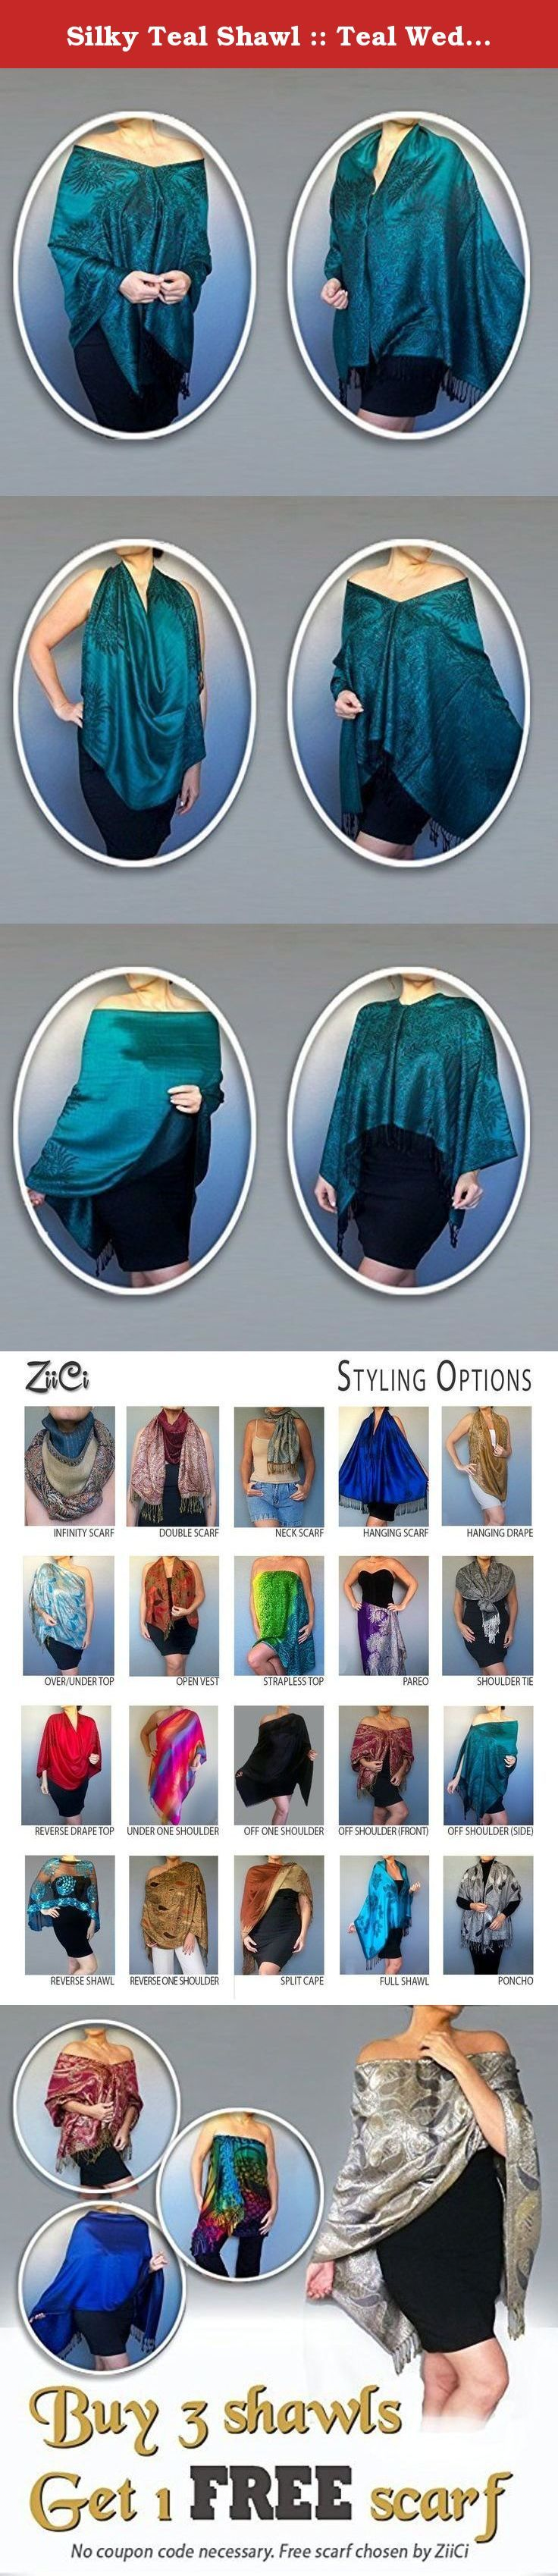 Silky Teal Shawl :: Teal Wedding Wrap :: Mother Of The Bride Dress Wrap By ZiiCi. The rich hue of this teal shawl makes it a versatile accessory, from luncheons to cocktail hour to a wedding. A ZiiCi shawl is unlike other wraps and scarves around. It has a unique elastic neckline so no tying or pinning is required. Just pull the inner cord lock and in an instant you've got a whole new outfit. This year-round product has dozens of applications: pashmina, shawl, tunic, poncho, kimono and…